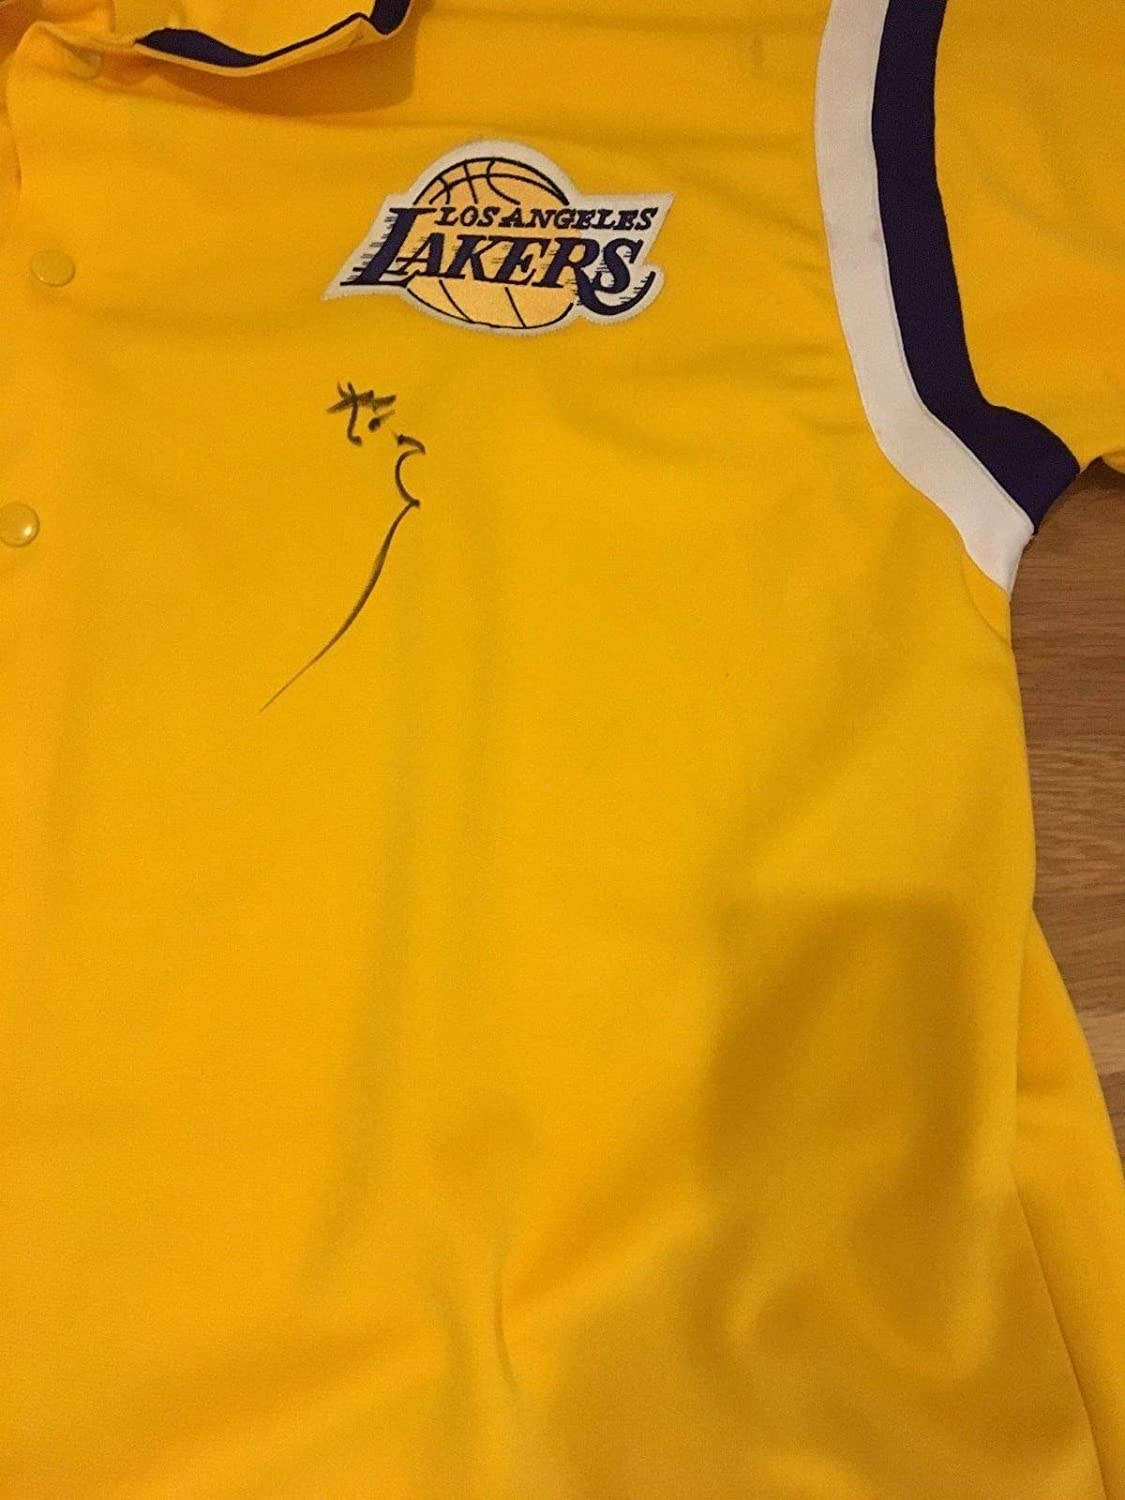 a80162a3ca0 Kobe Bryant Autographed Signed Los Angeles Lakers Warm Up Jersey  Memorabilia JSA Certificate at Amazon s Sports Collectibles Store